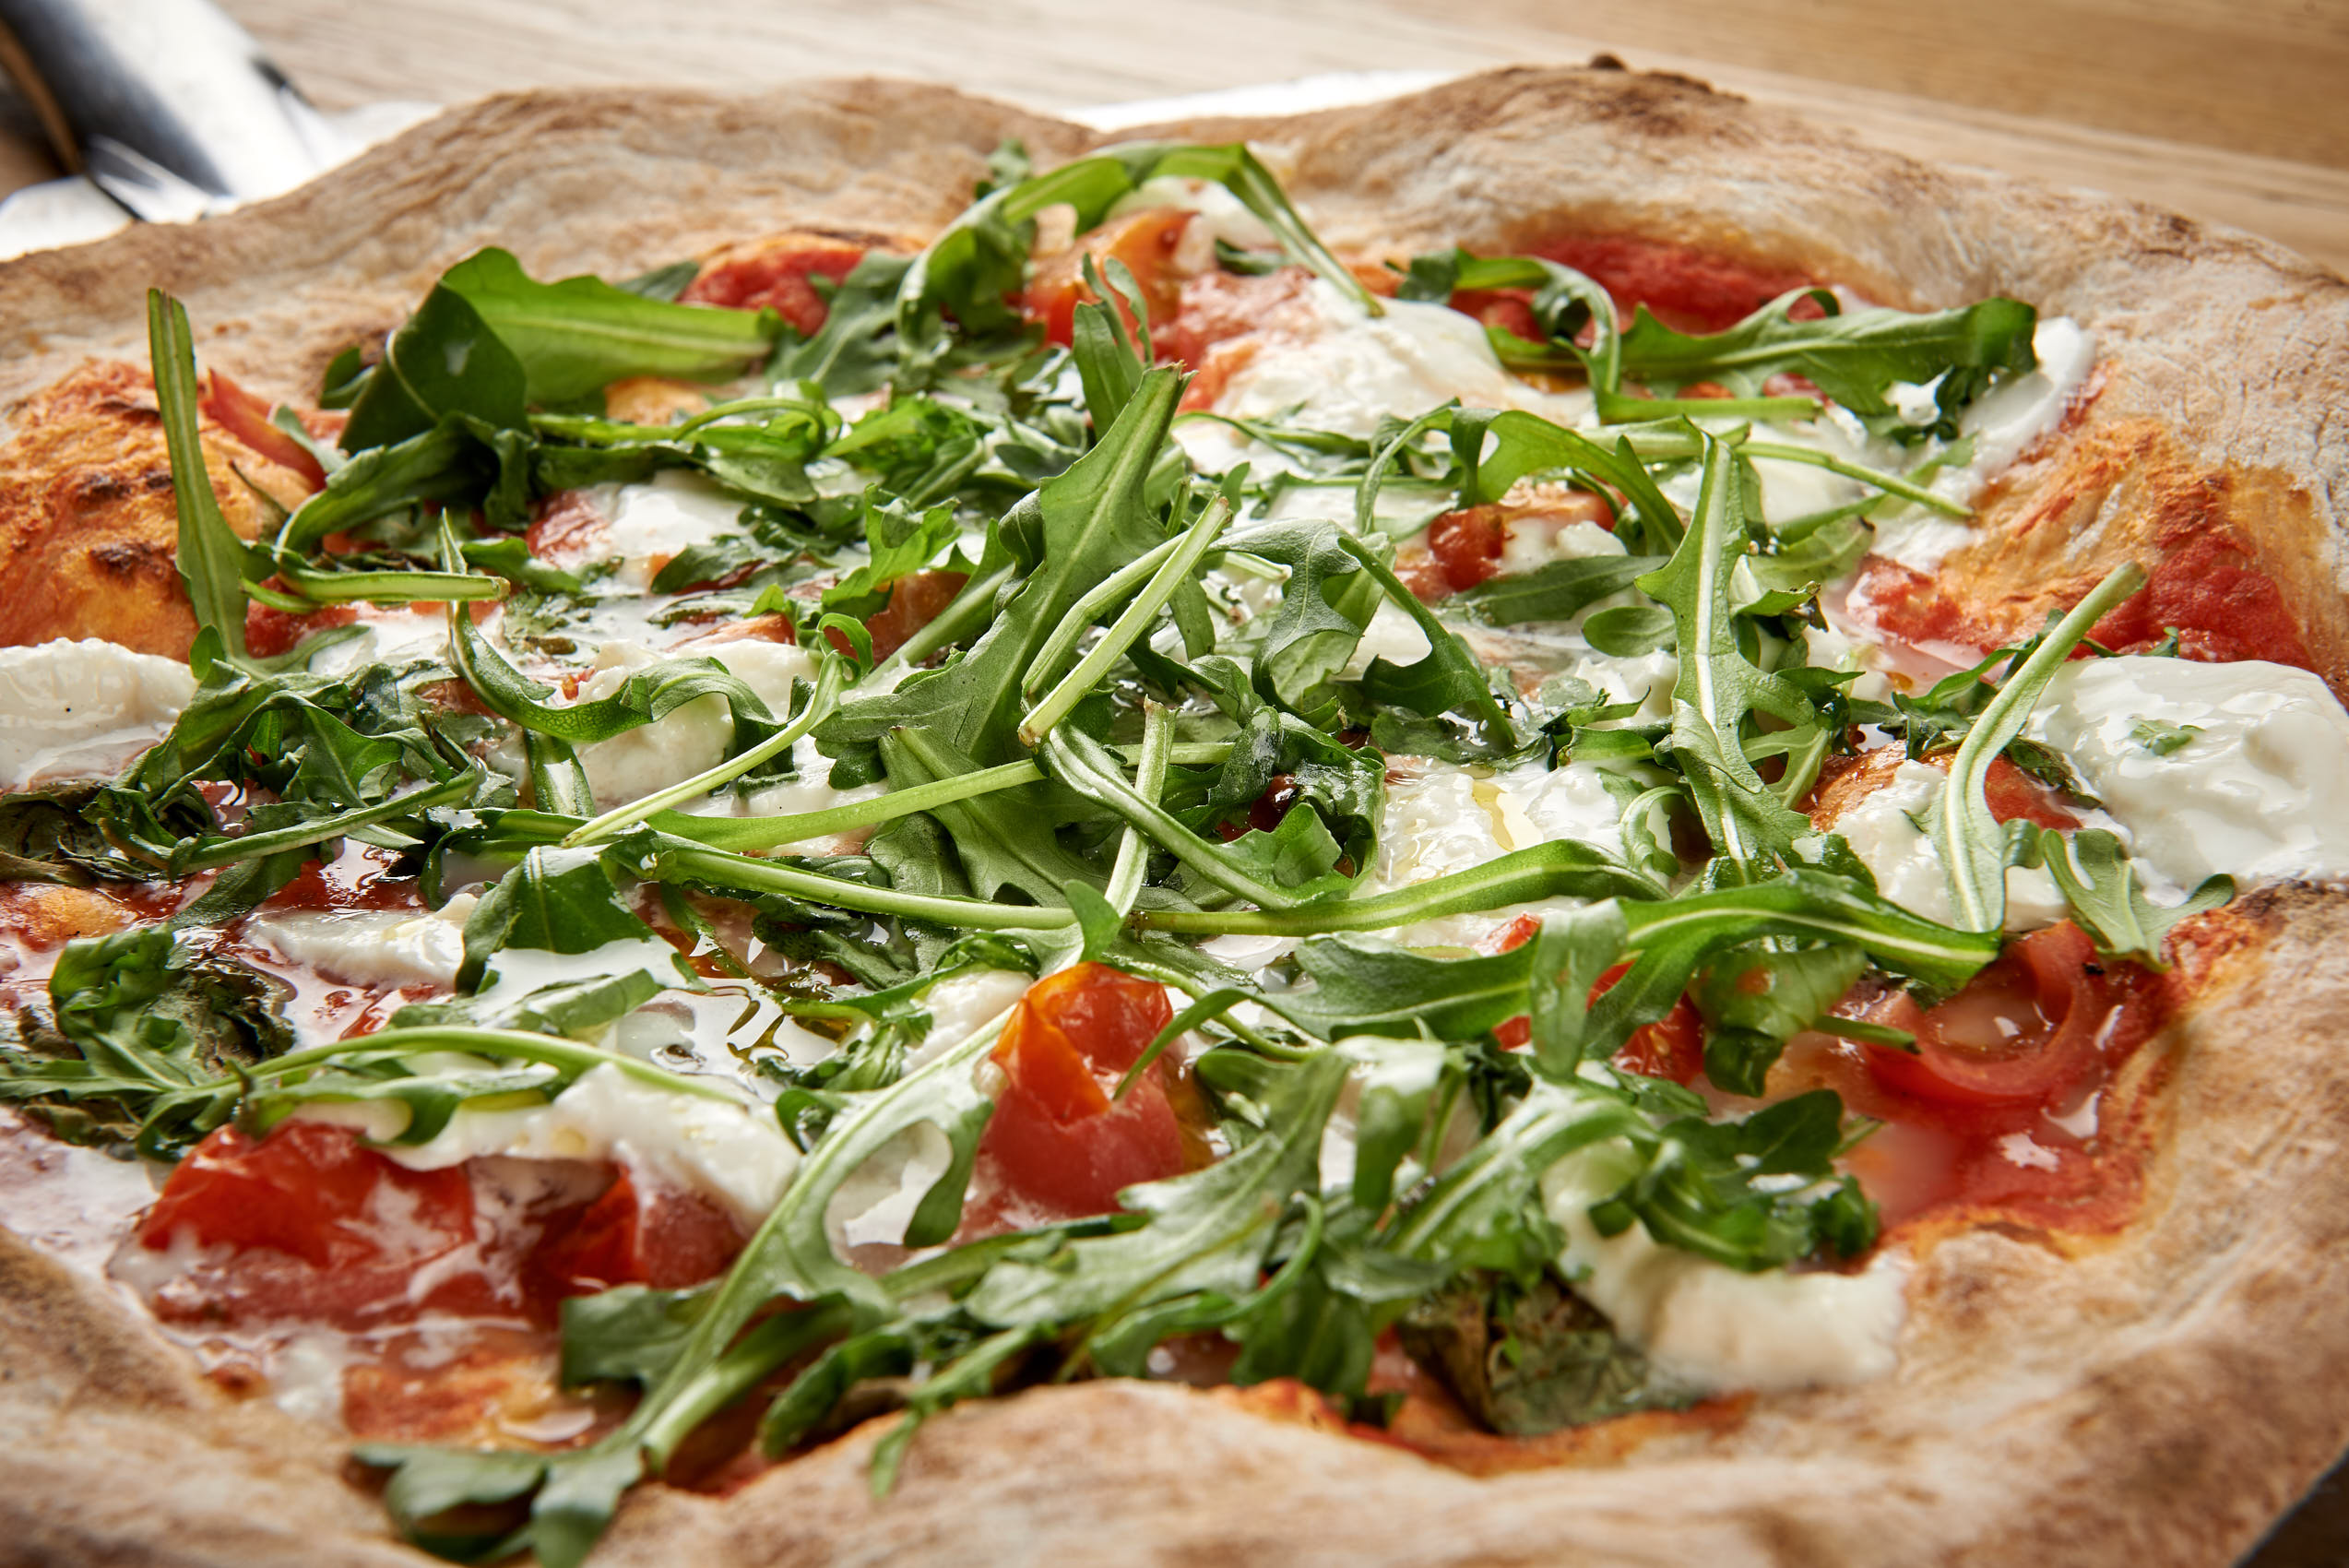 Pizza with ruccola, tomatoes and mozerella photo by Marcel Tiedje